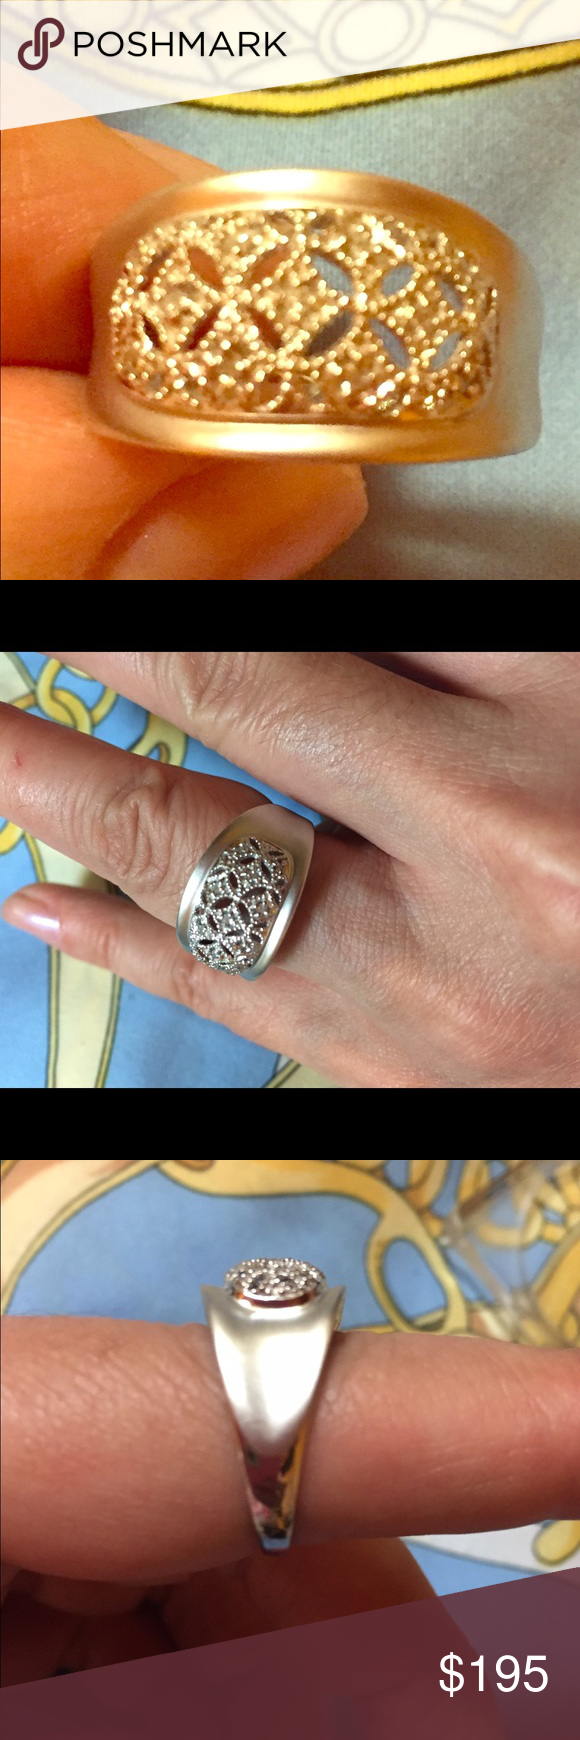 How To Get Scratches Out Of White Gold Ring